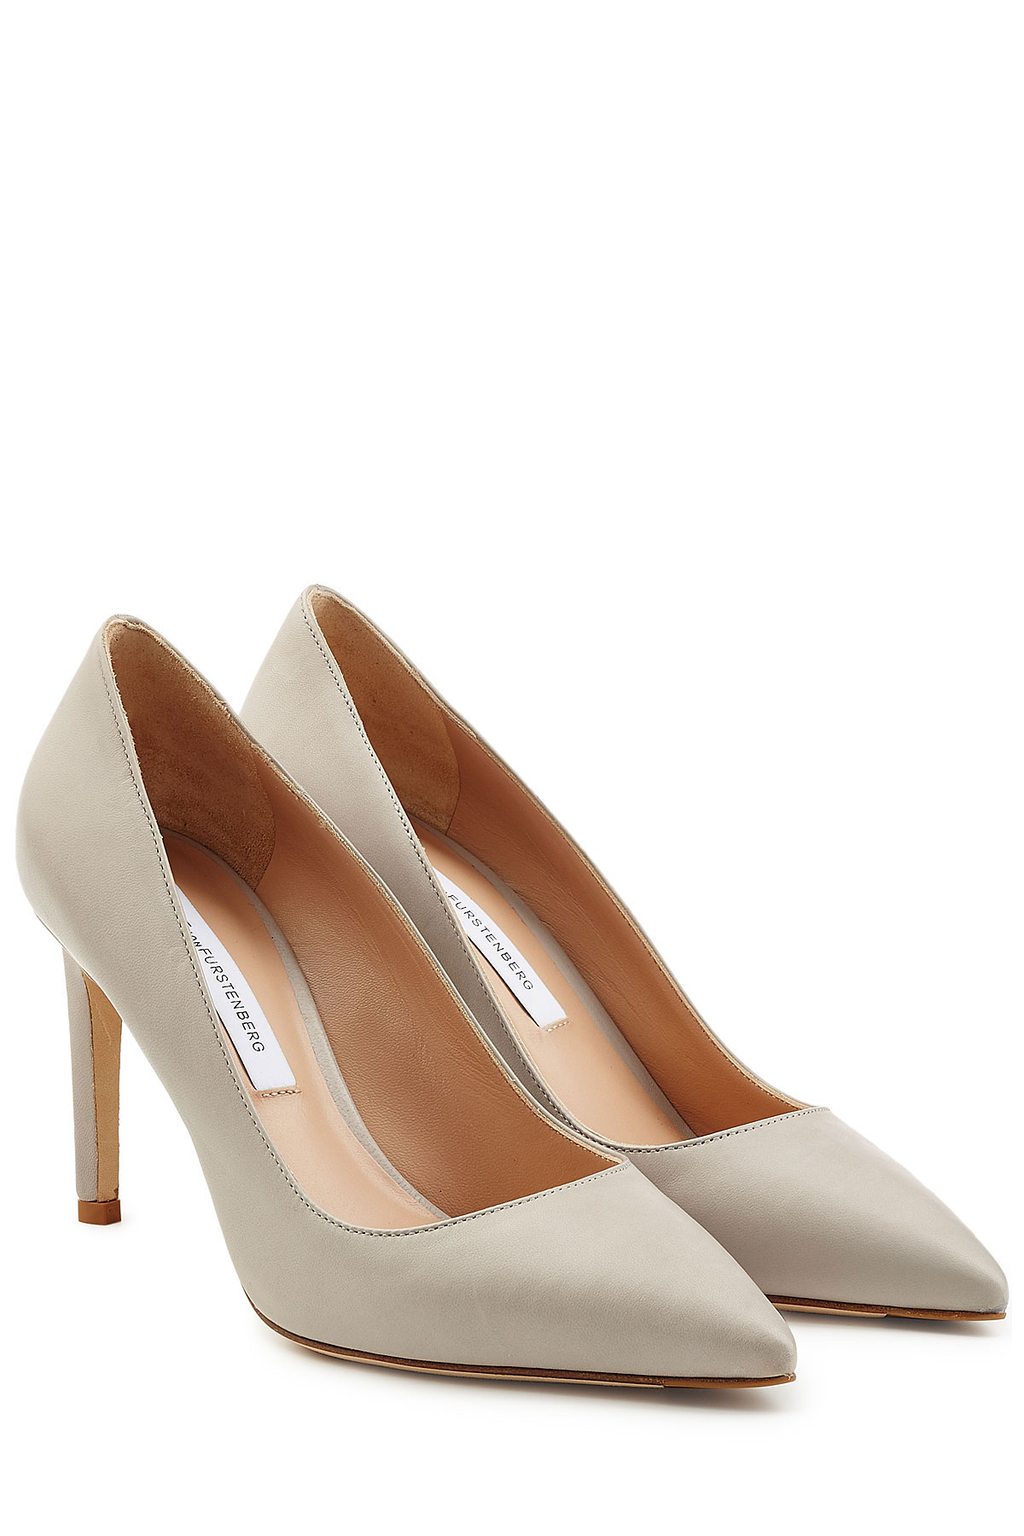 Leather Pointy Toe London Pumps Grey - predominant colour: light grey; occasions: evening; material: leather; heel height: high; heel: stiletto; toe: pointed toe; style: courts; finish: plain; pattern: plain; season: s/s 2016; wardrobe: event